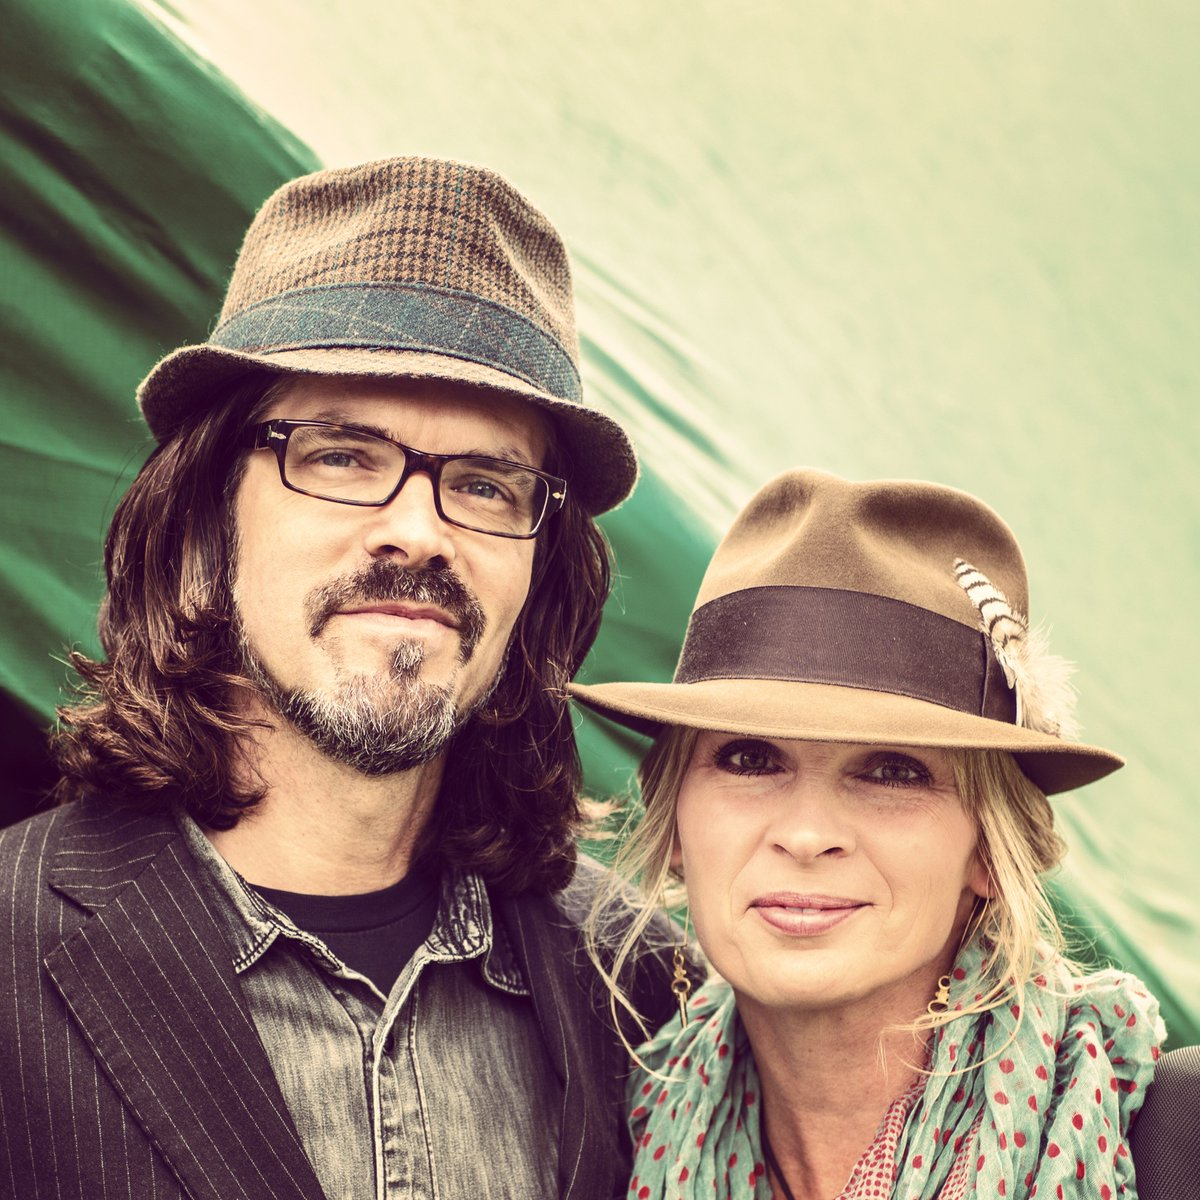 JUST ANNOUNCED! Over the Rhine live at The Kessler Thursday, March 28th! Tickets on sale now! http://ow.ly/fcpn30nhkM3 #thekessler #oakcliff